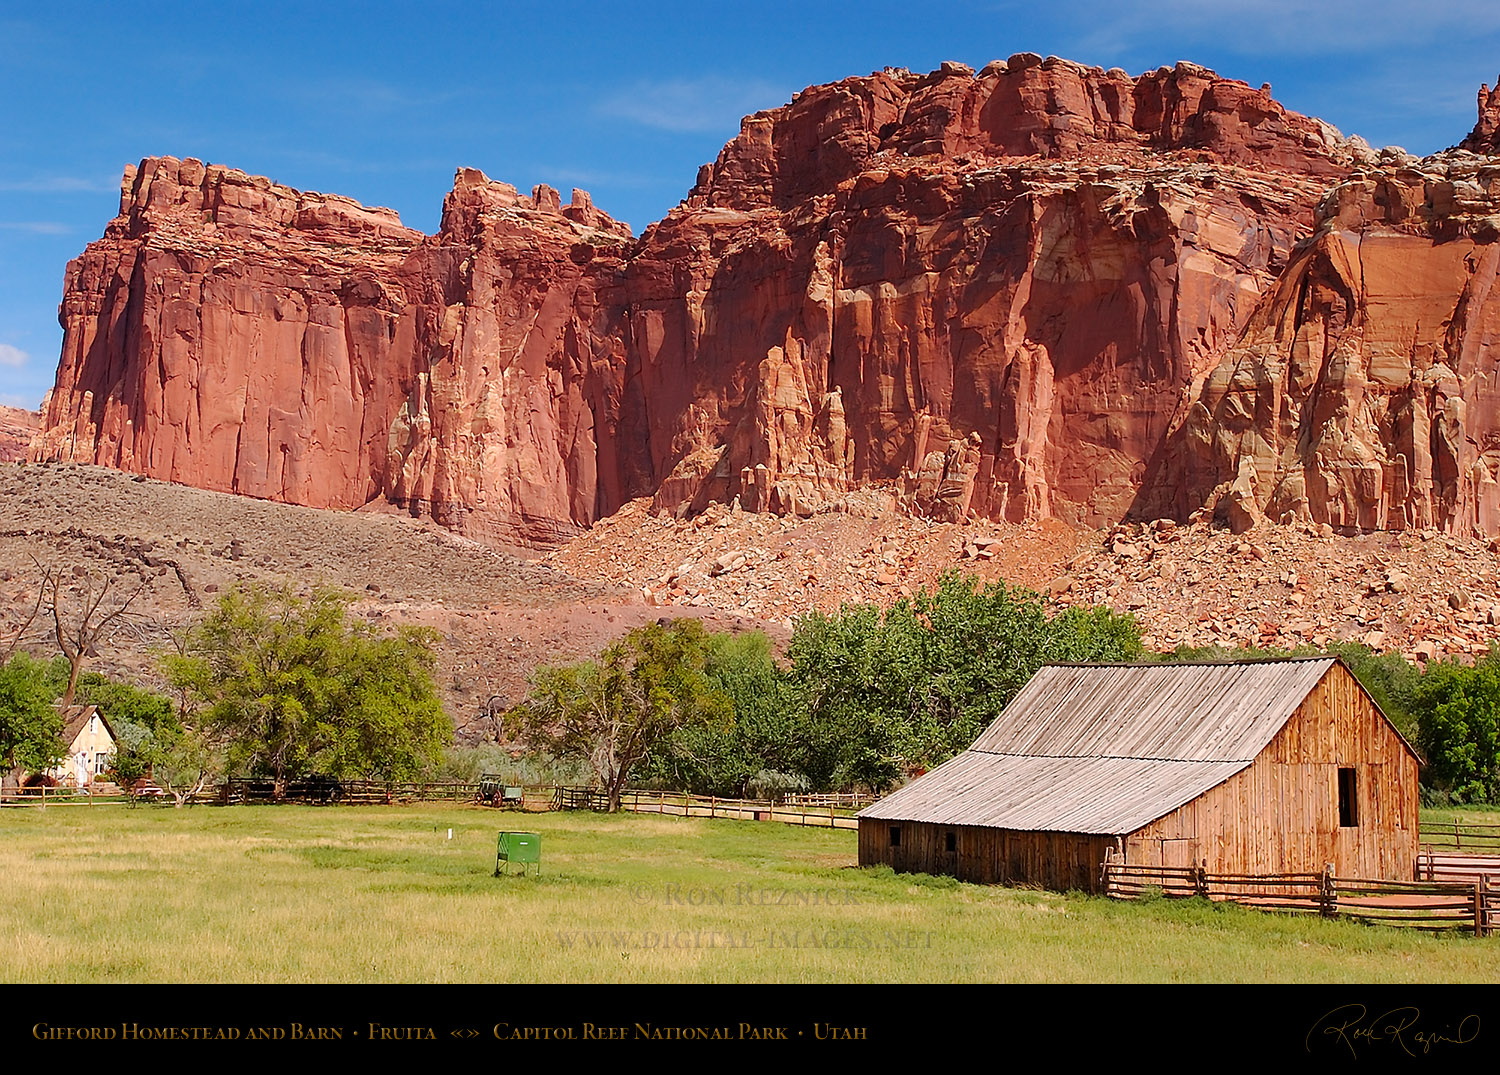 Gifford Homestead Capitol Reef